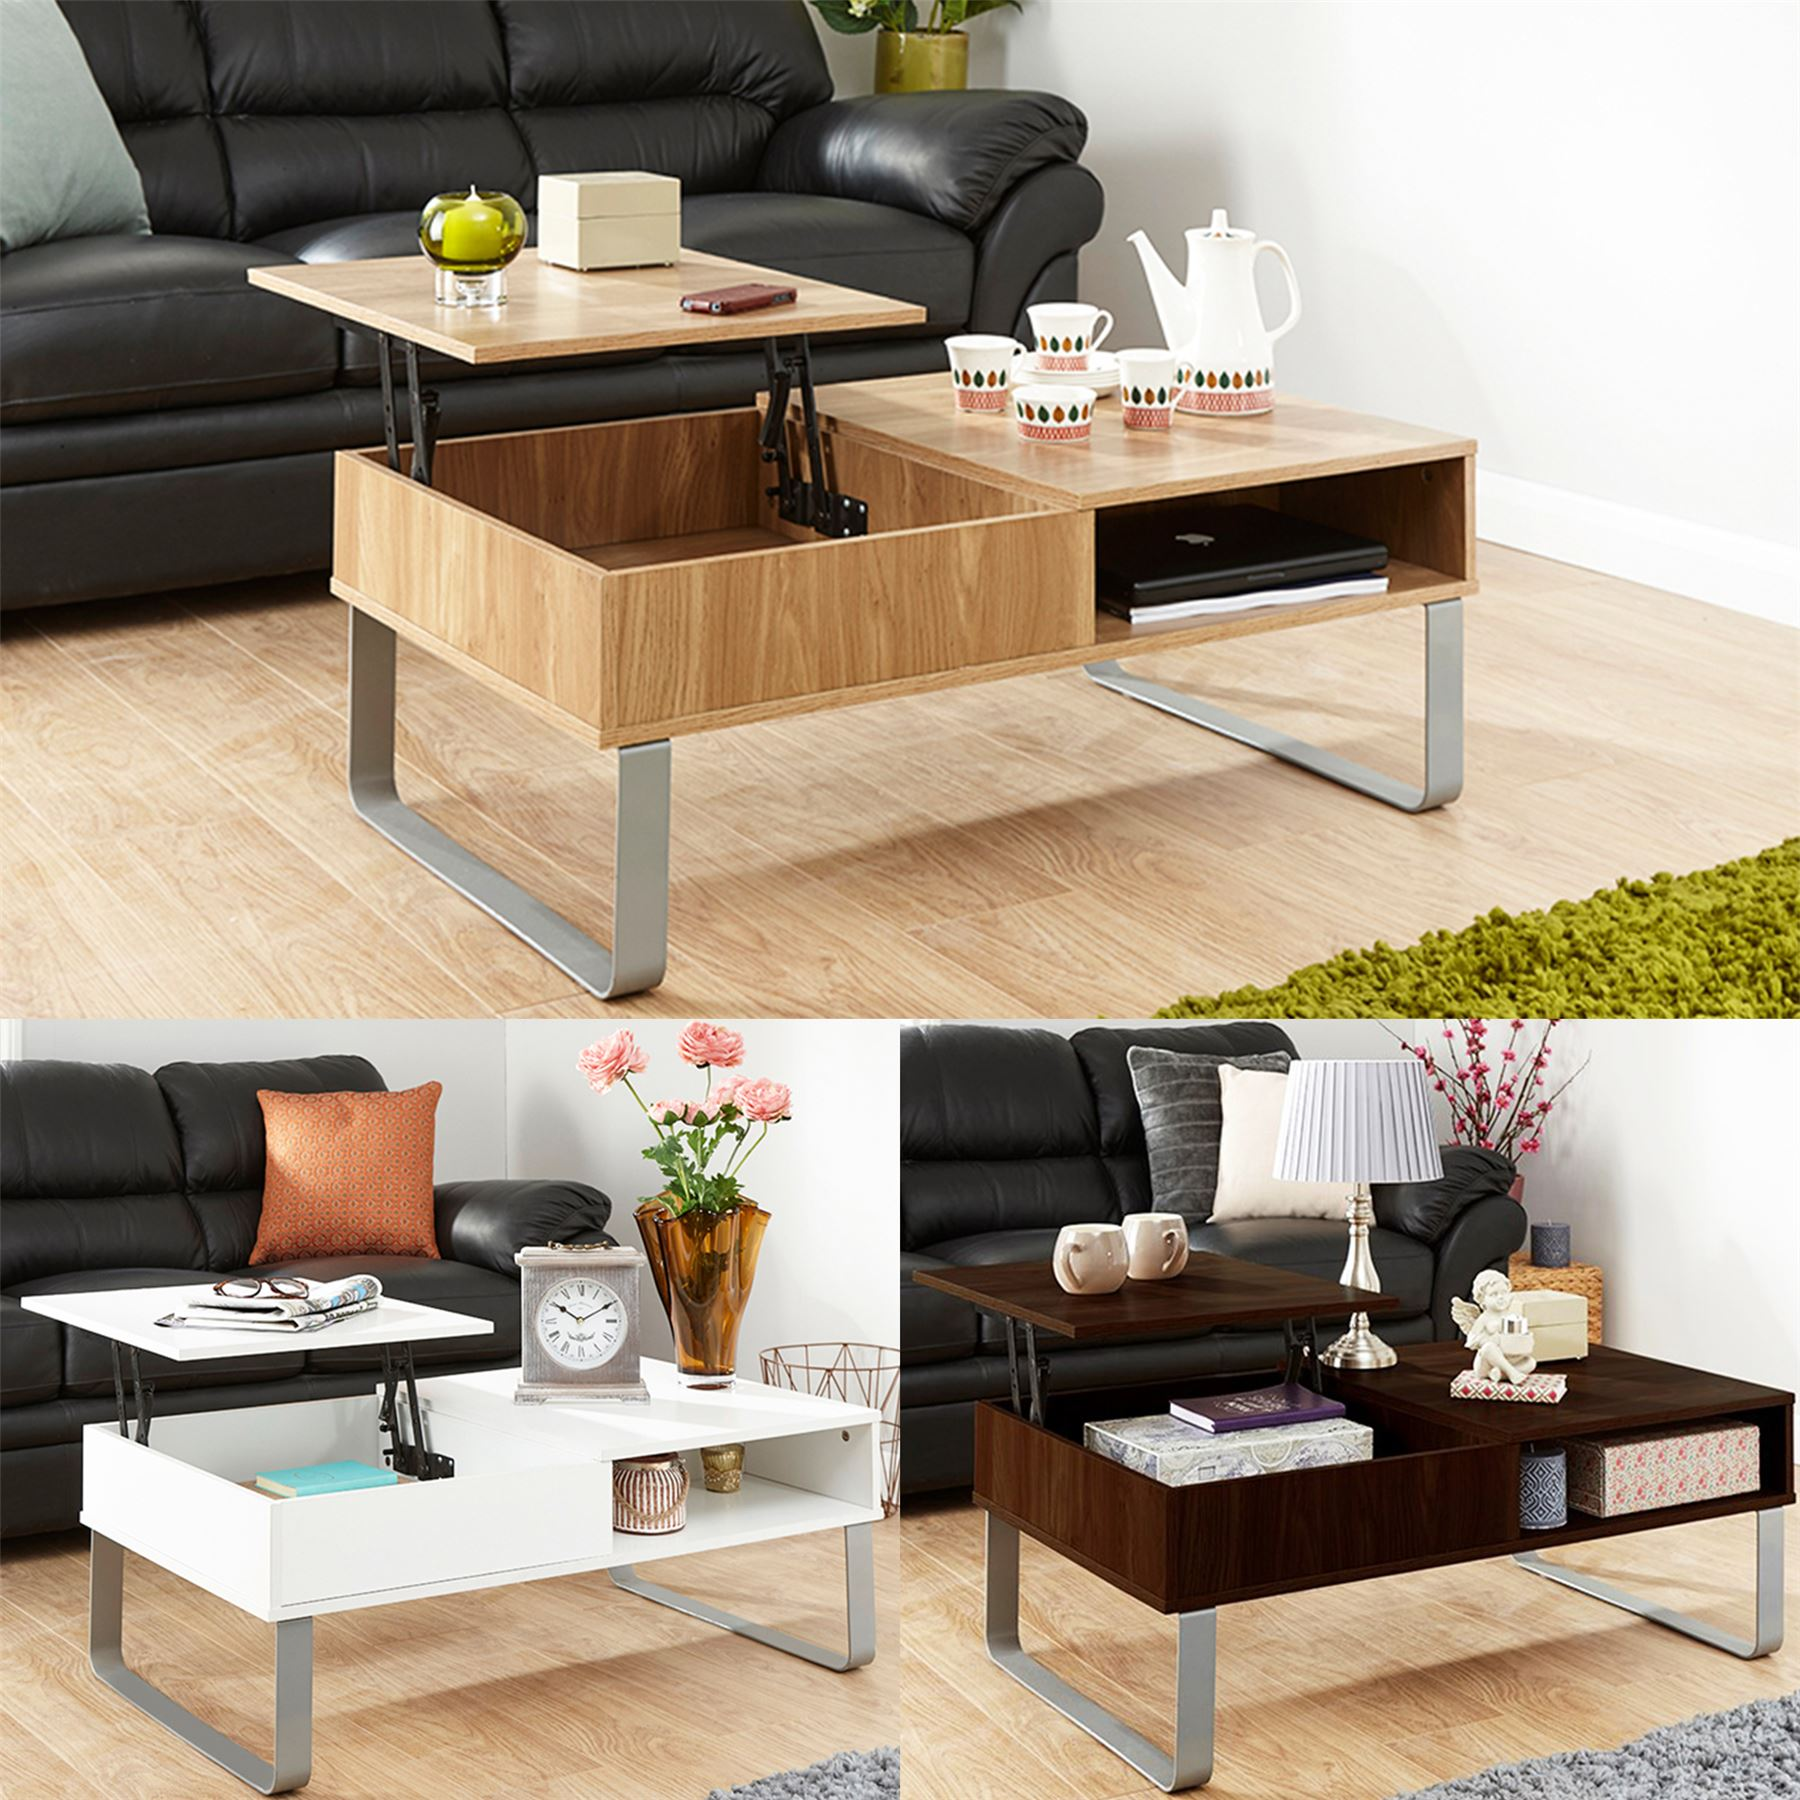 ASPEN LIFT UP COFFEE TABLE TEA SPLIT LEVEL TOP TABLE W LARGE